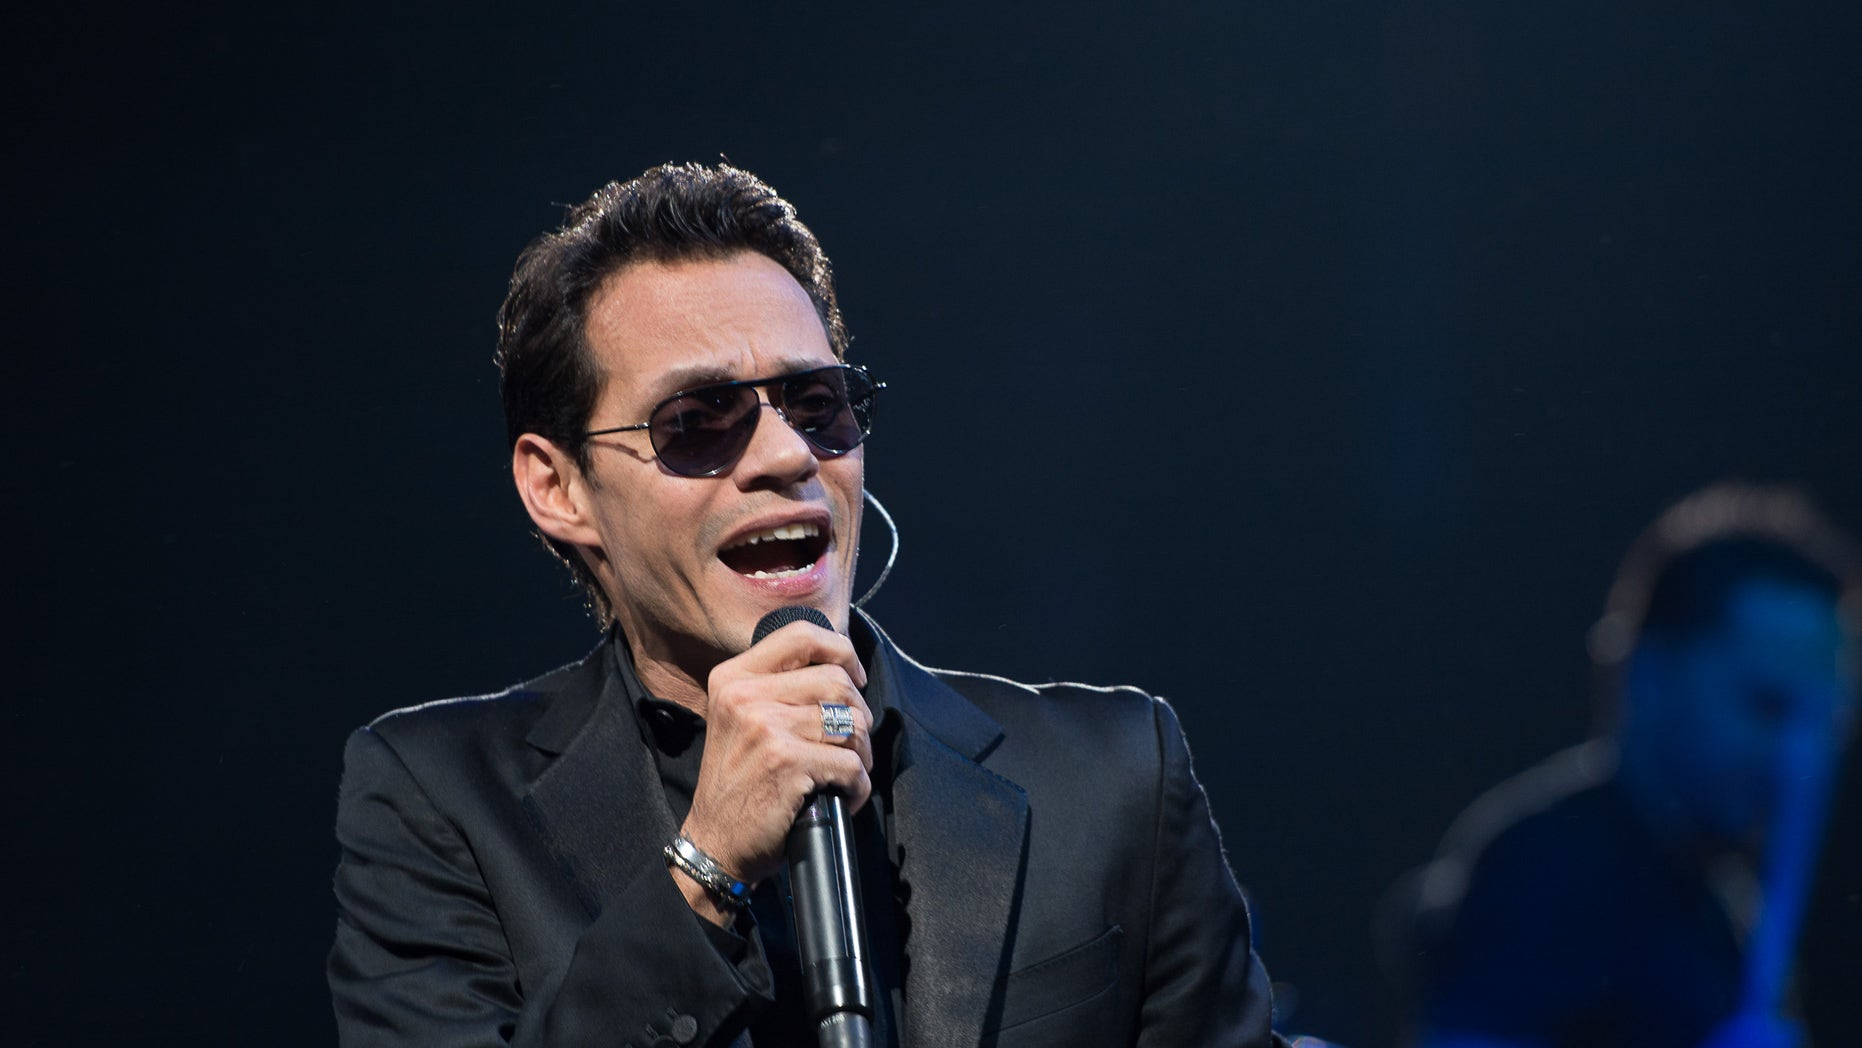 Marc Anthony on February 15, 2014 in the Brooklyn borough of New York City.